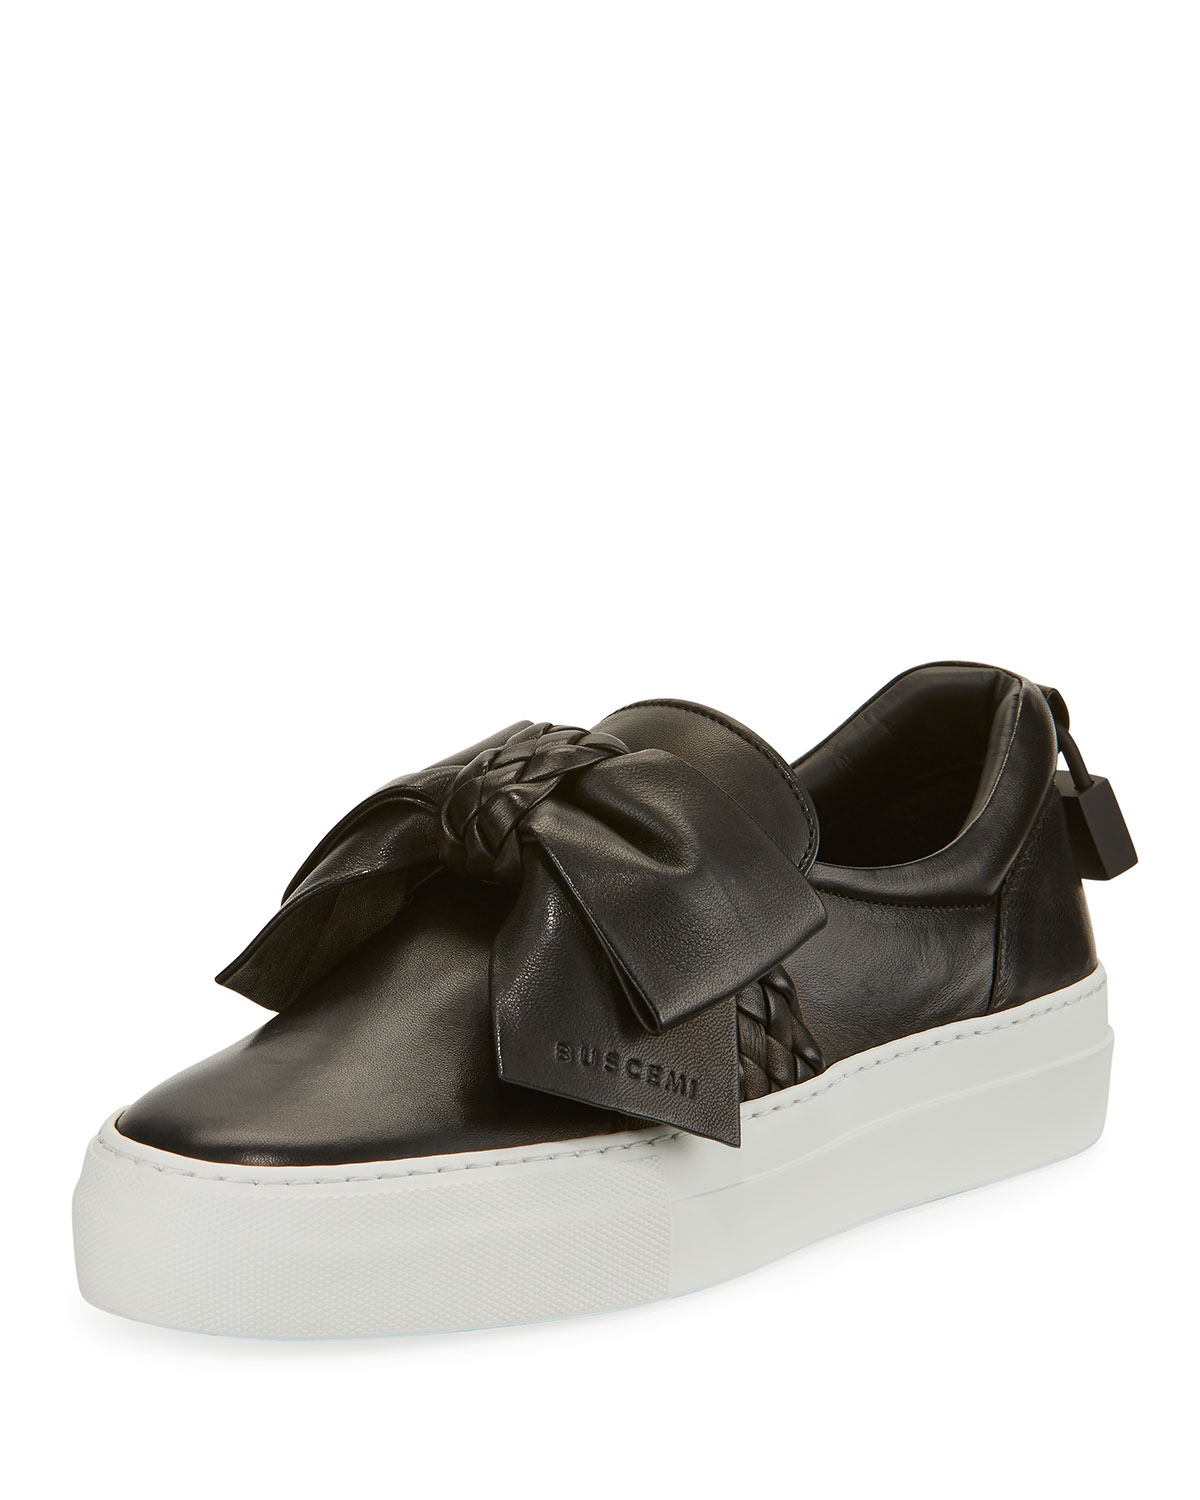 Discount Cheapest Price Cheap Visa Payment bow detail sneakers - Black Buscemi Low Shipping Fee Cheap Online Clearance Free Shipping uQdago